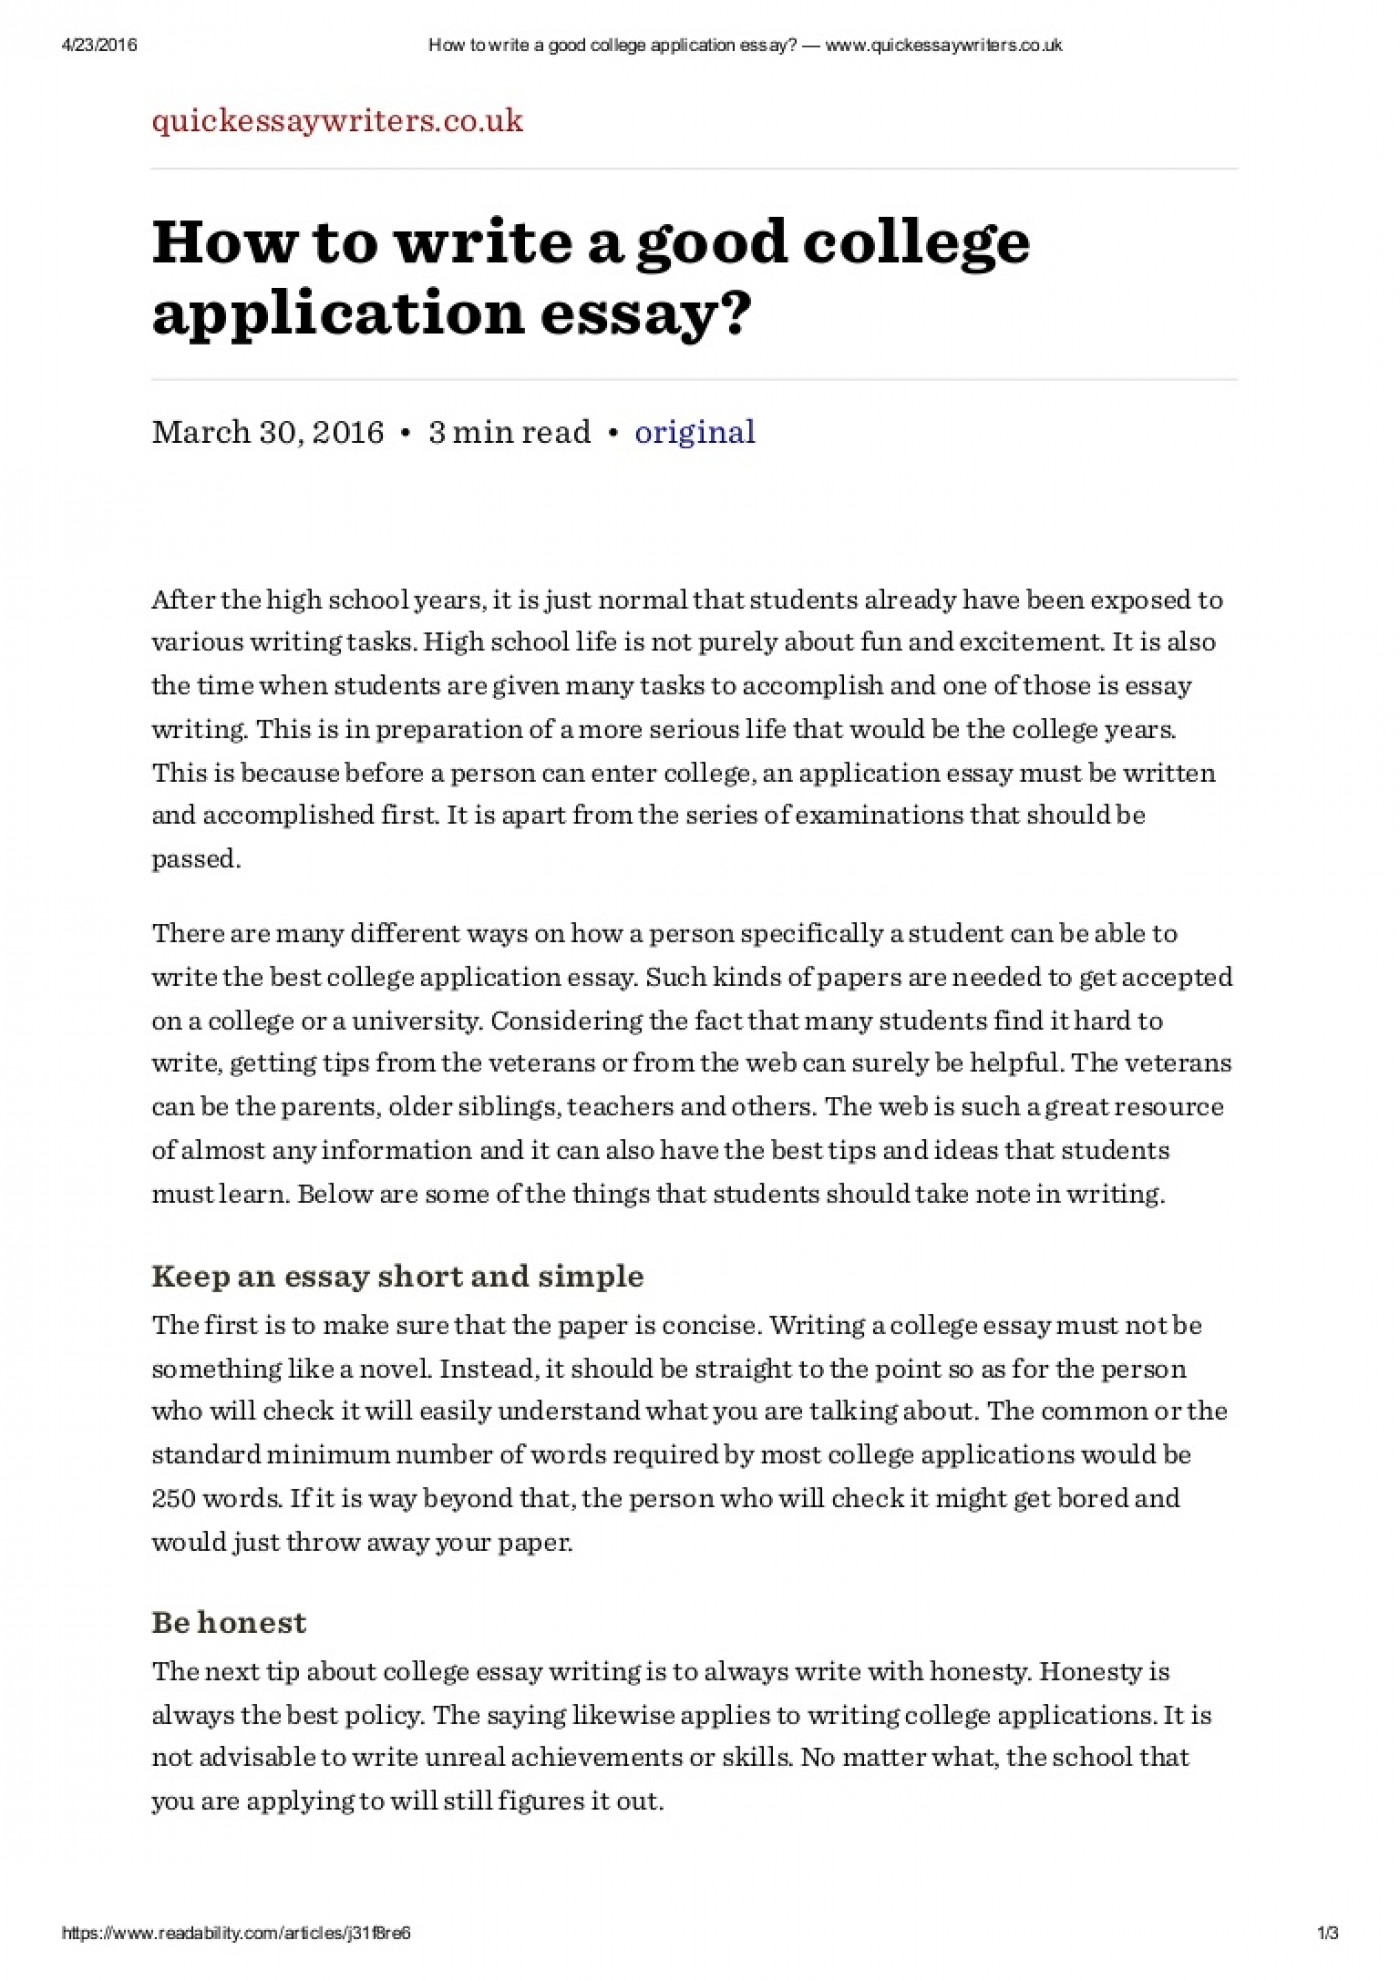 009 Essay Example College Application Howtowriteagoodcollegeapplicationessaywww Thumbnail Unbelievable Template Admission Topics To Avoid Help 1400